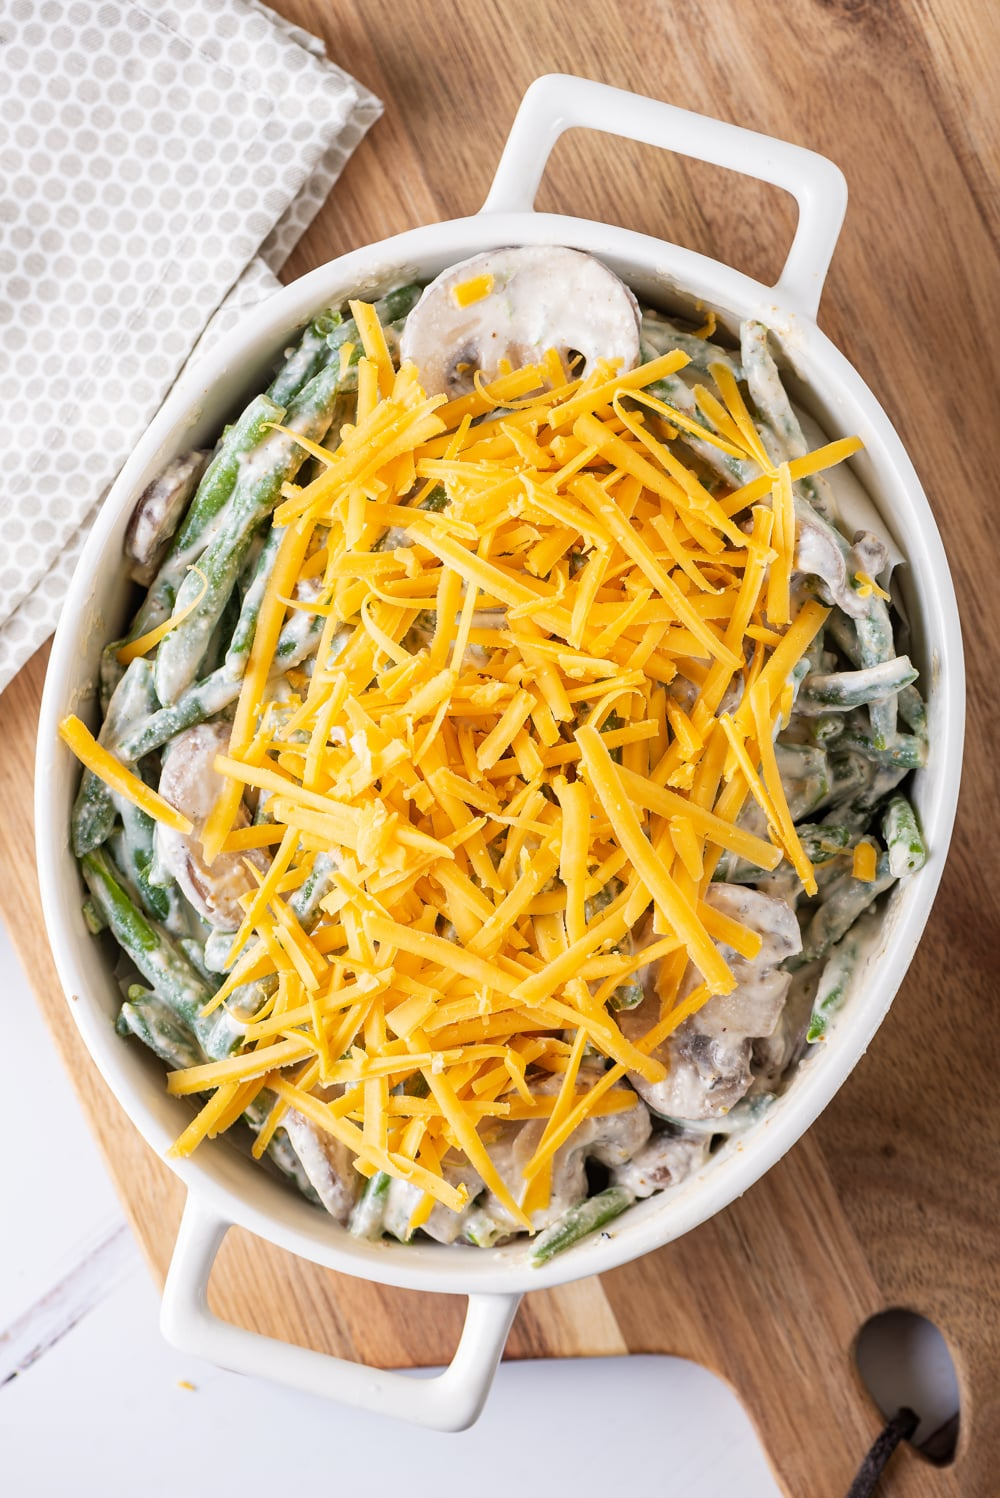 Green beans and mushrooms covered in a white sauce and topped with cheese in a white casserole dish.